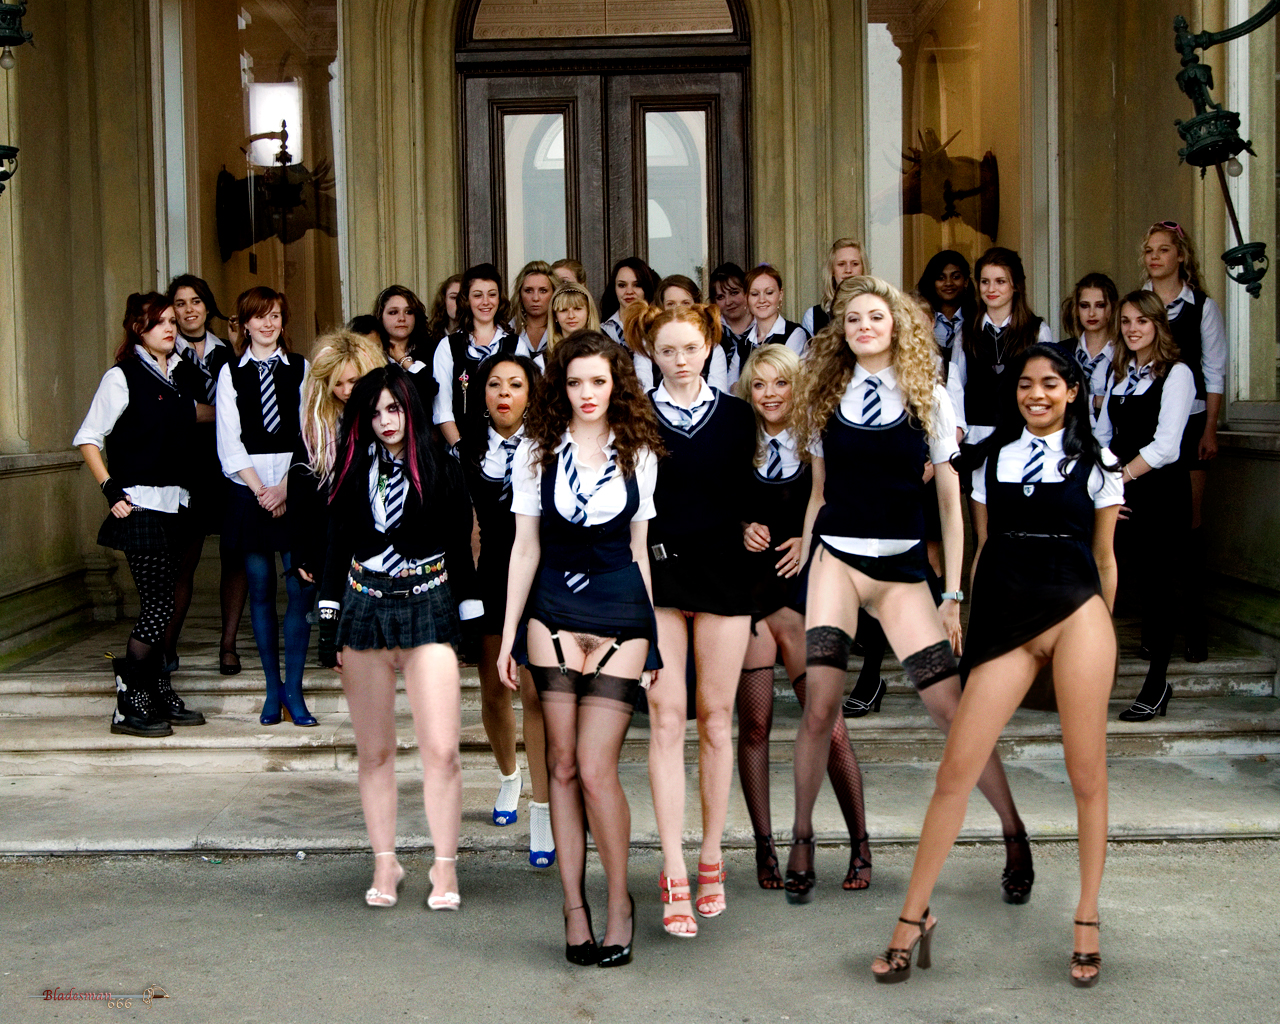 st-trinian-girls-pics-want-try